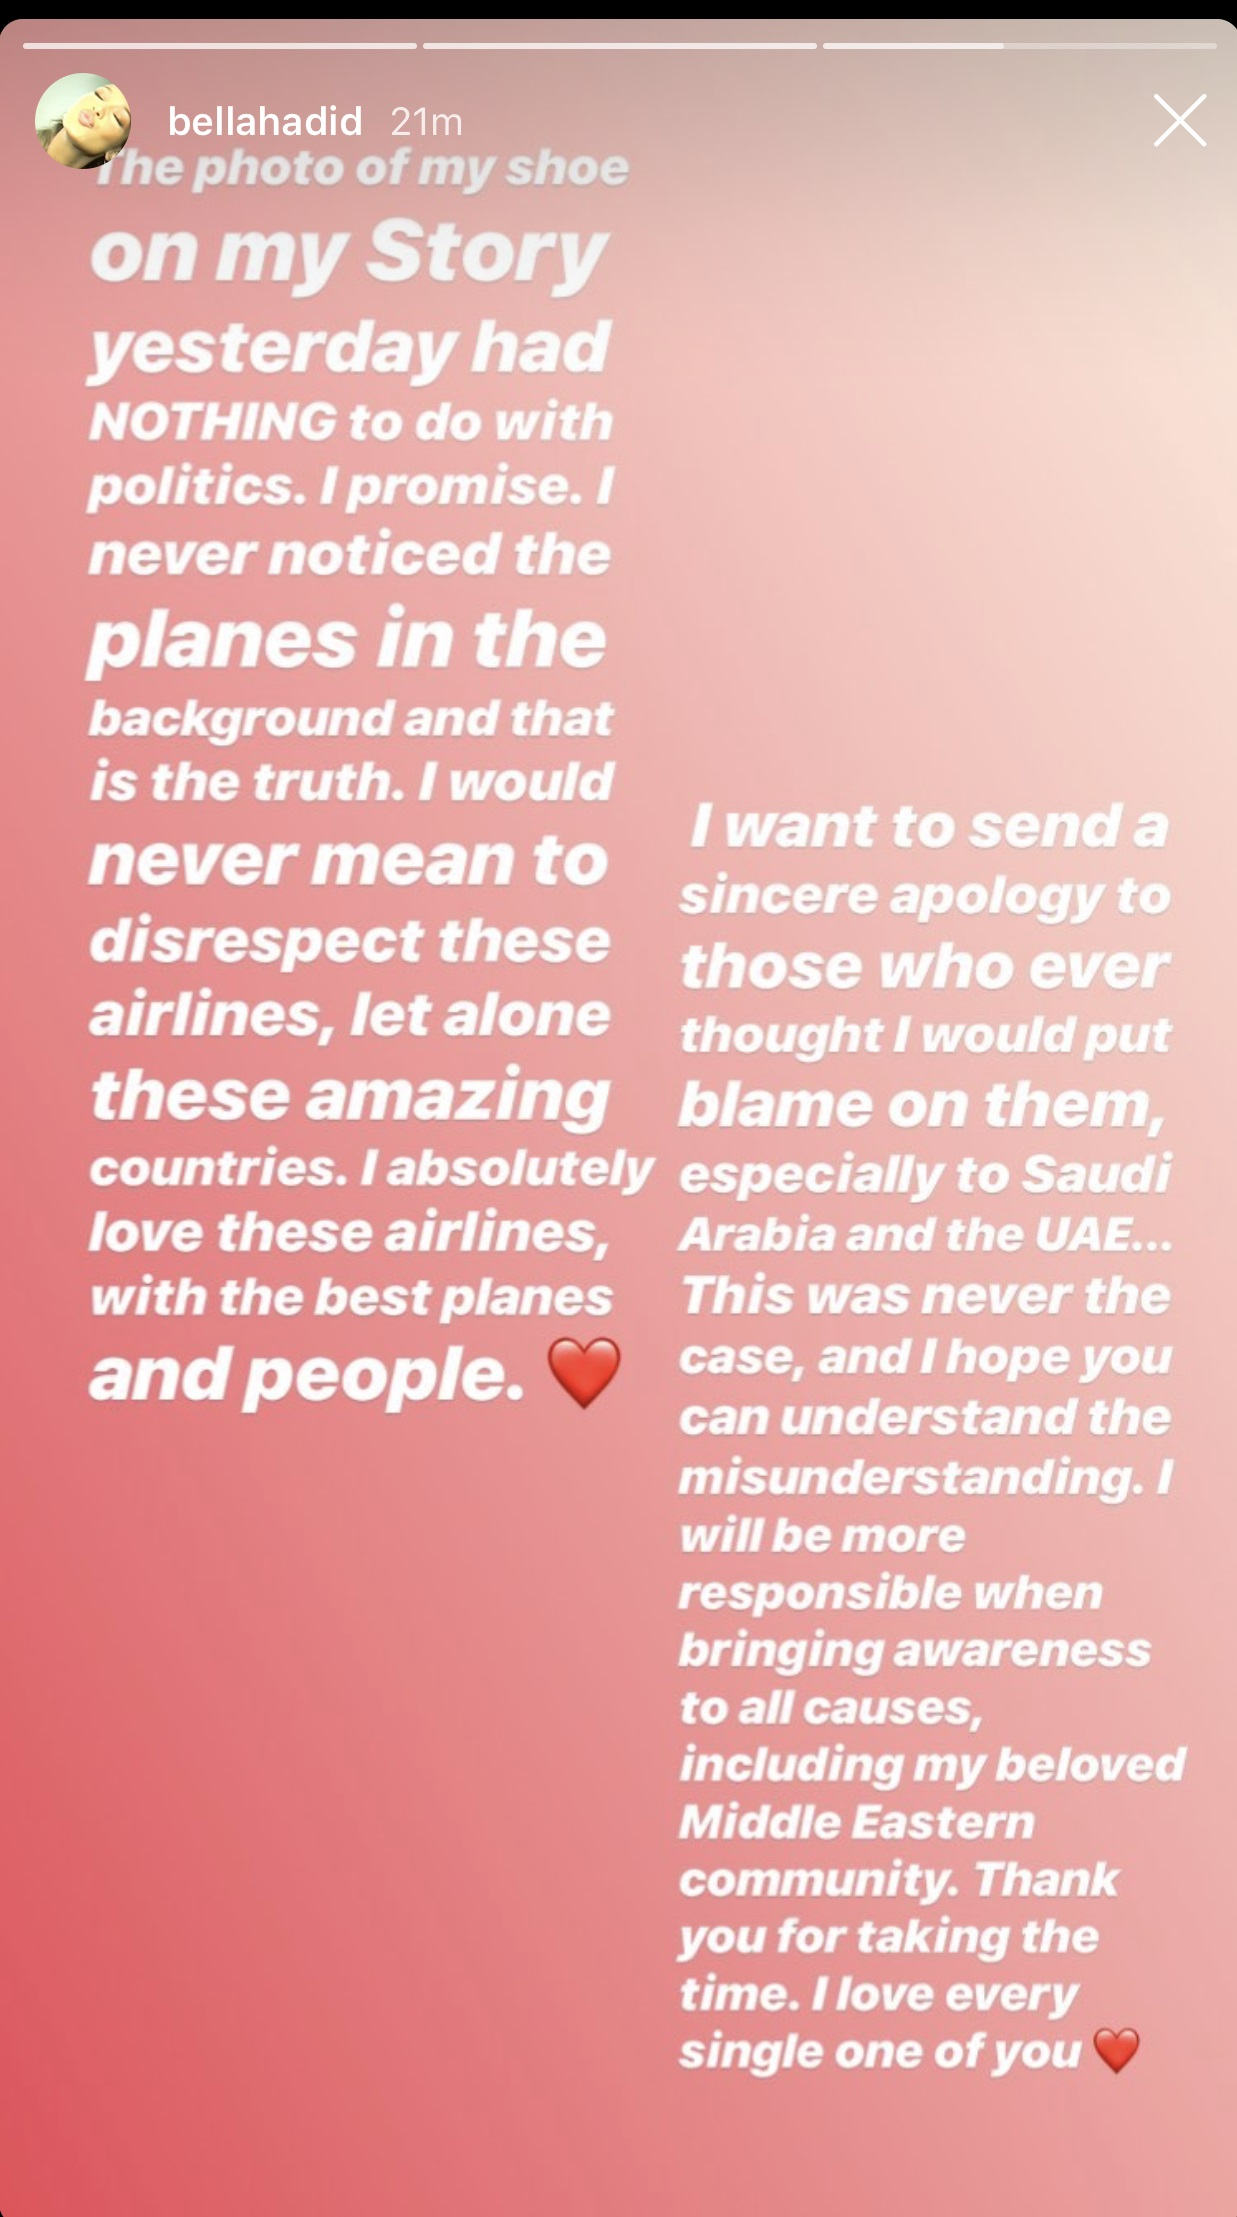 Bella Hadid's Instagram Story Apology Part 2